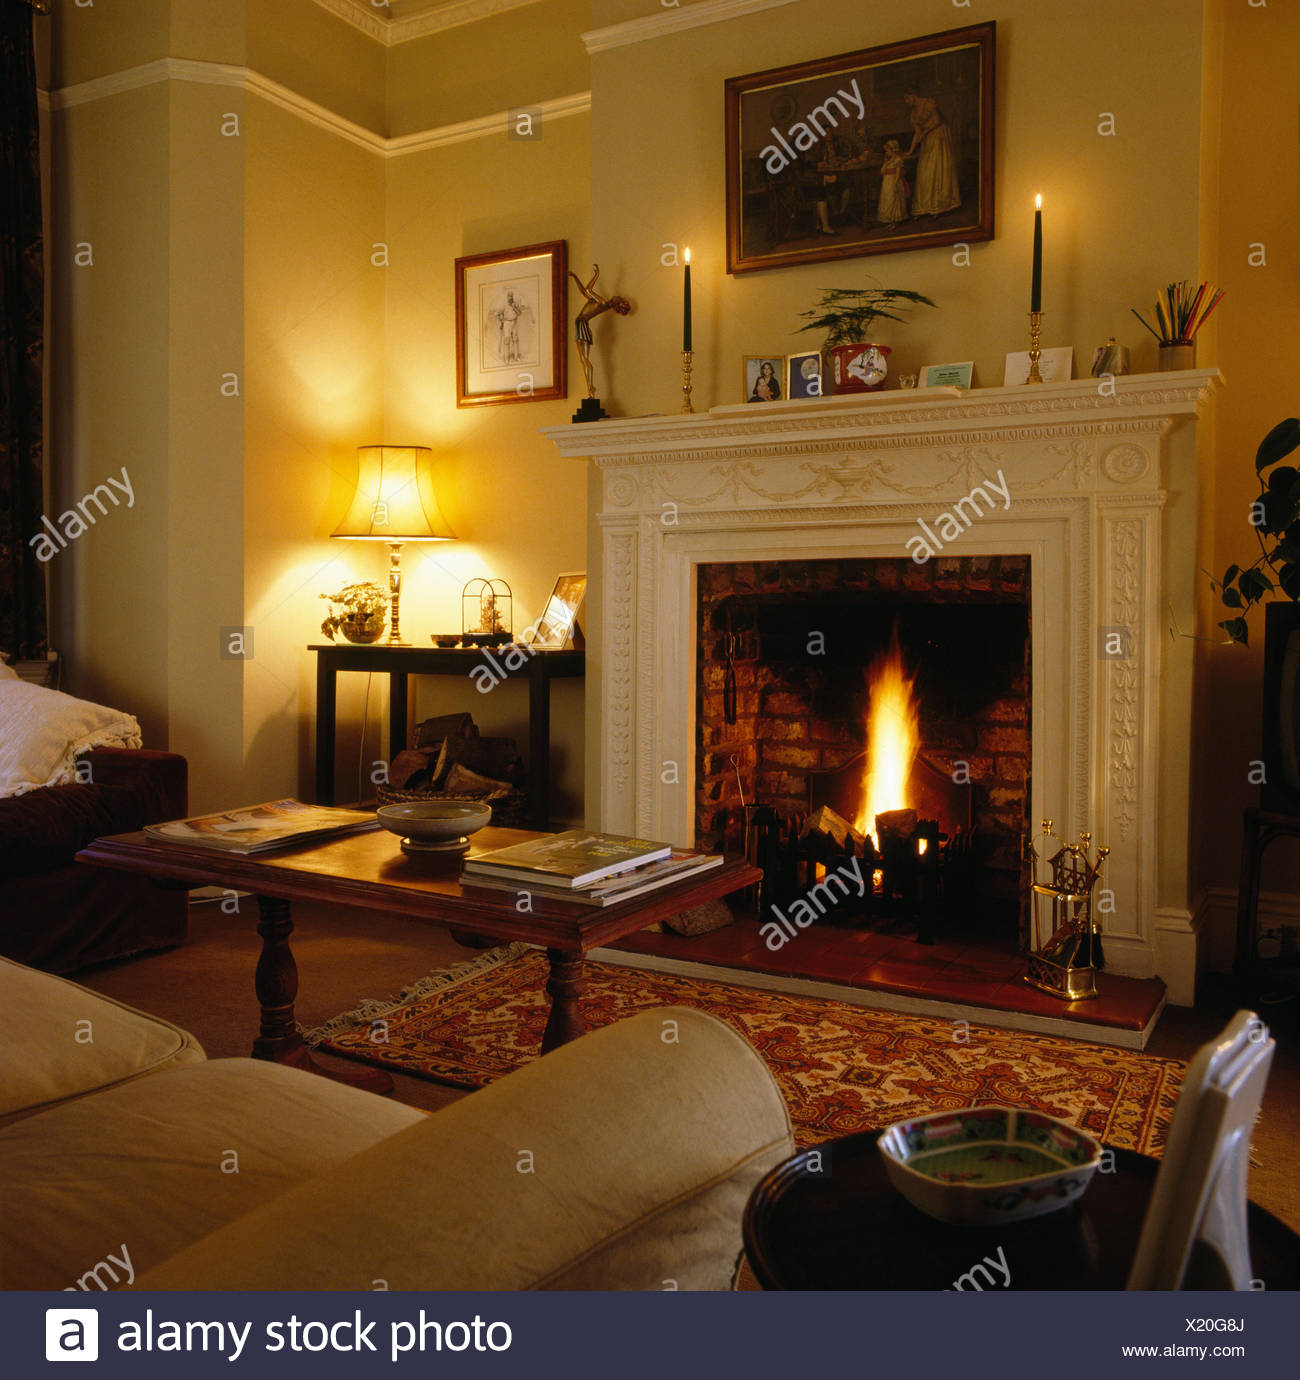 Lighted fire in fireplace in eighties living room with lighted lamp and candles - Stock Image